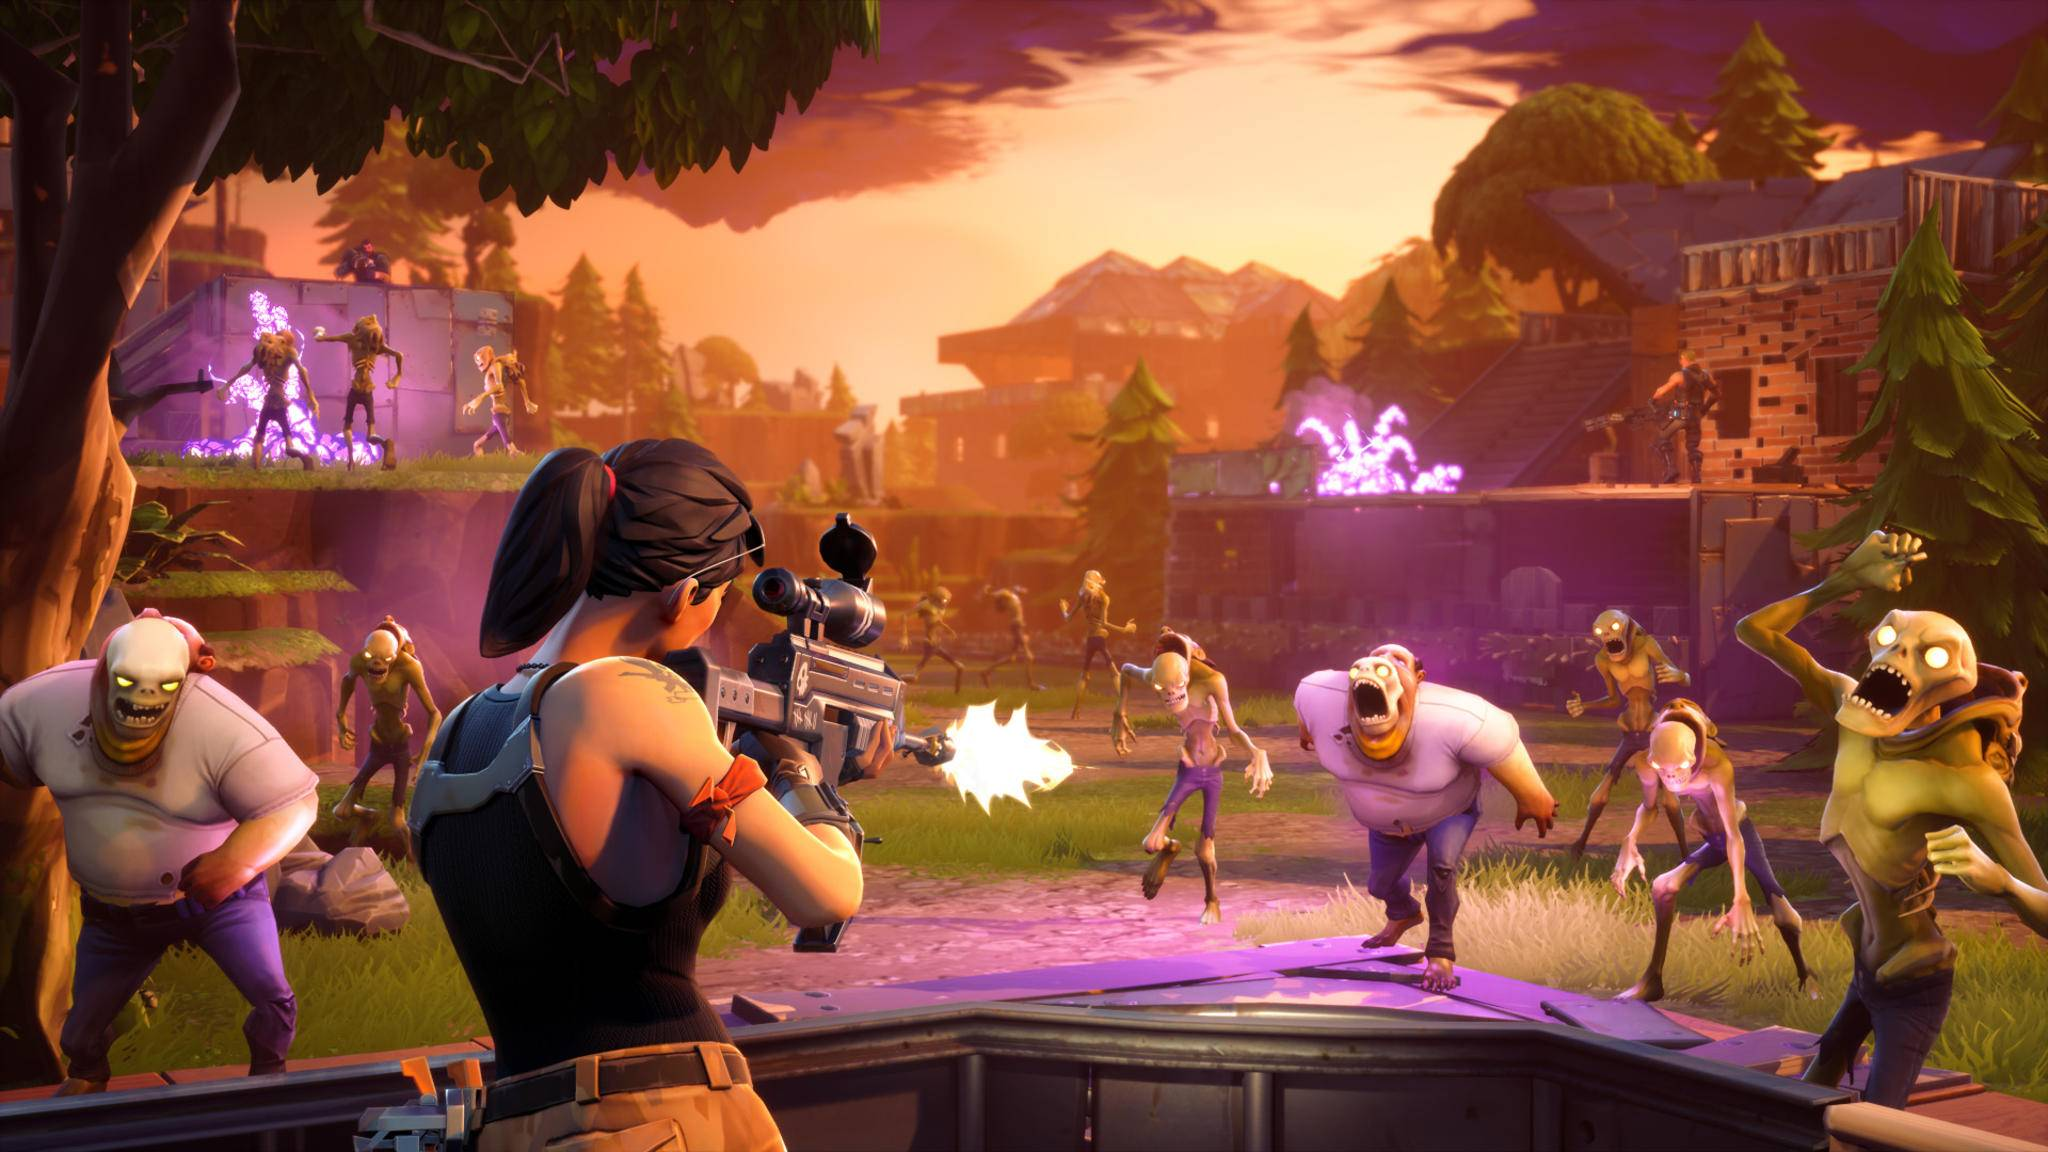 """Fortnite: Rette die Welt"" mischt Tower-Defense, Survival und Action."